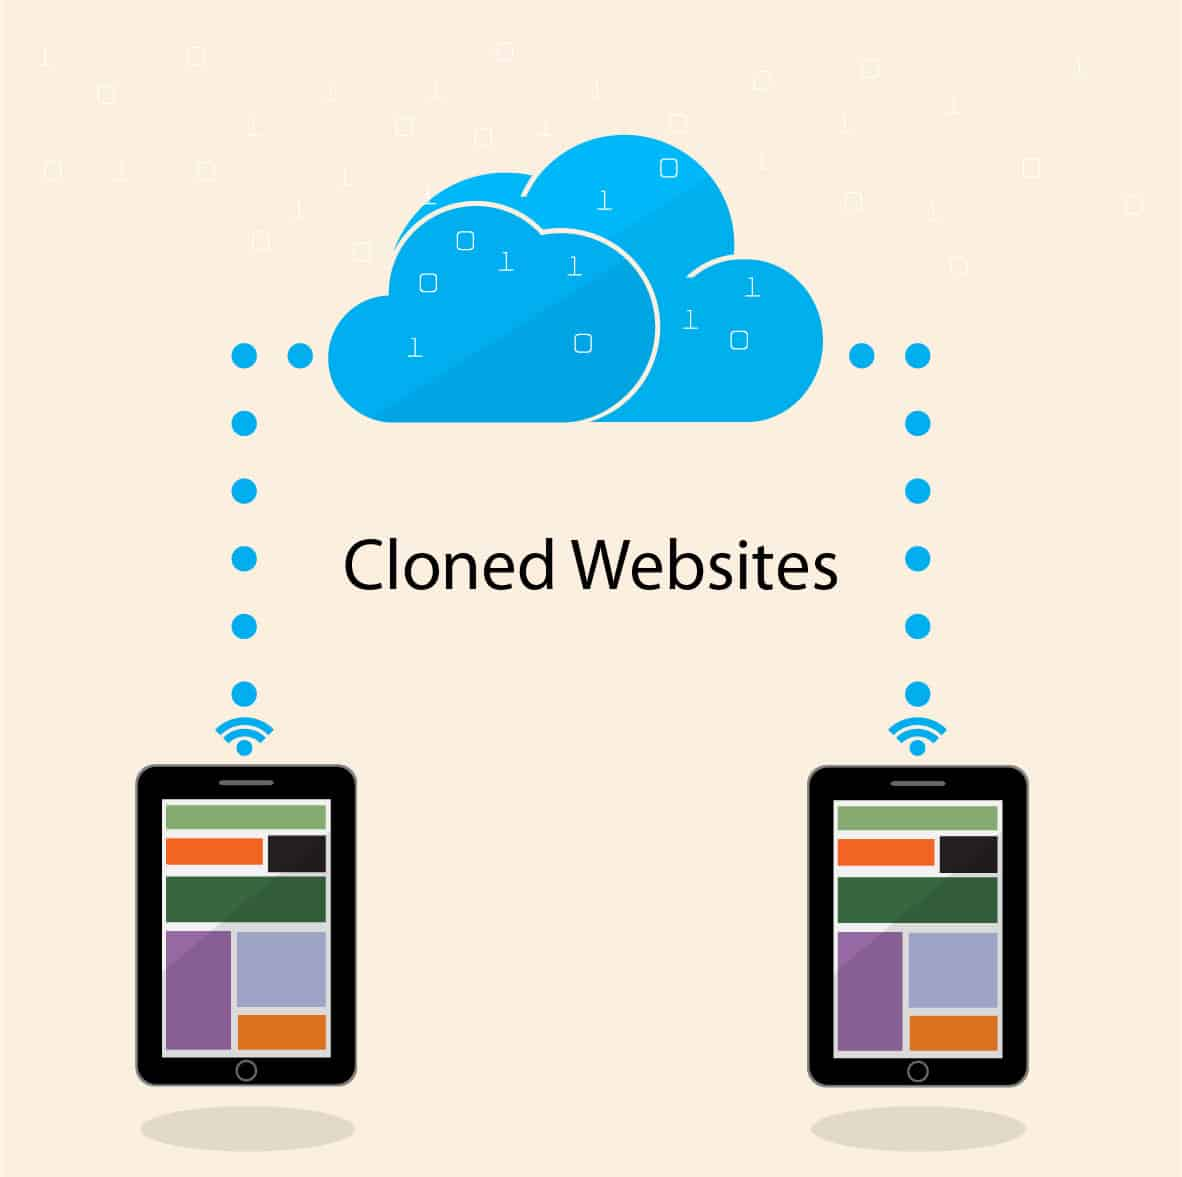 cloned websites